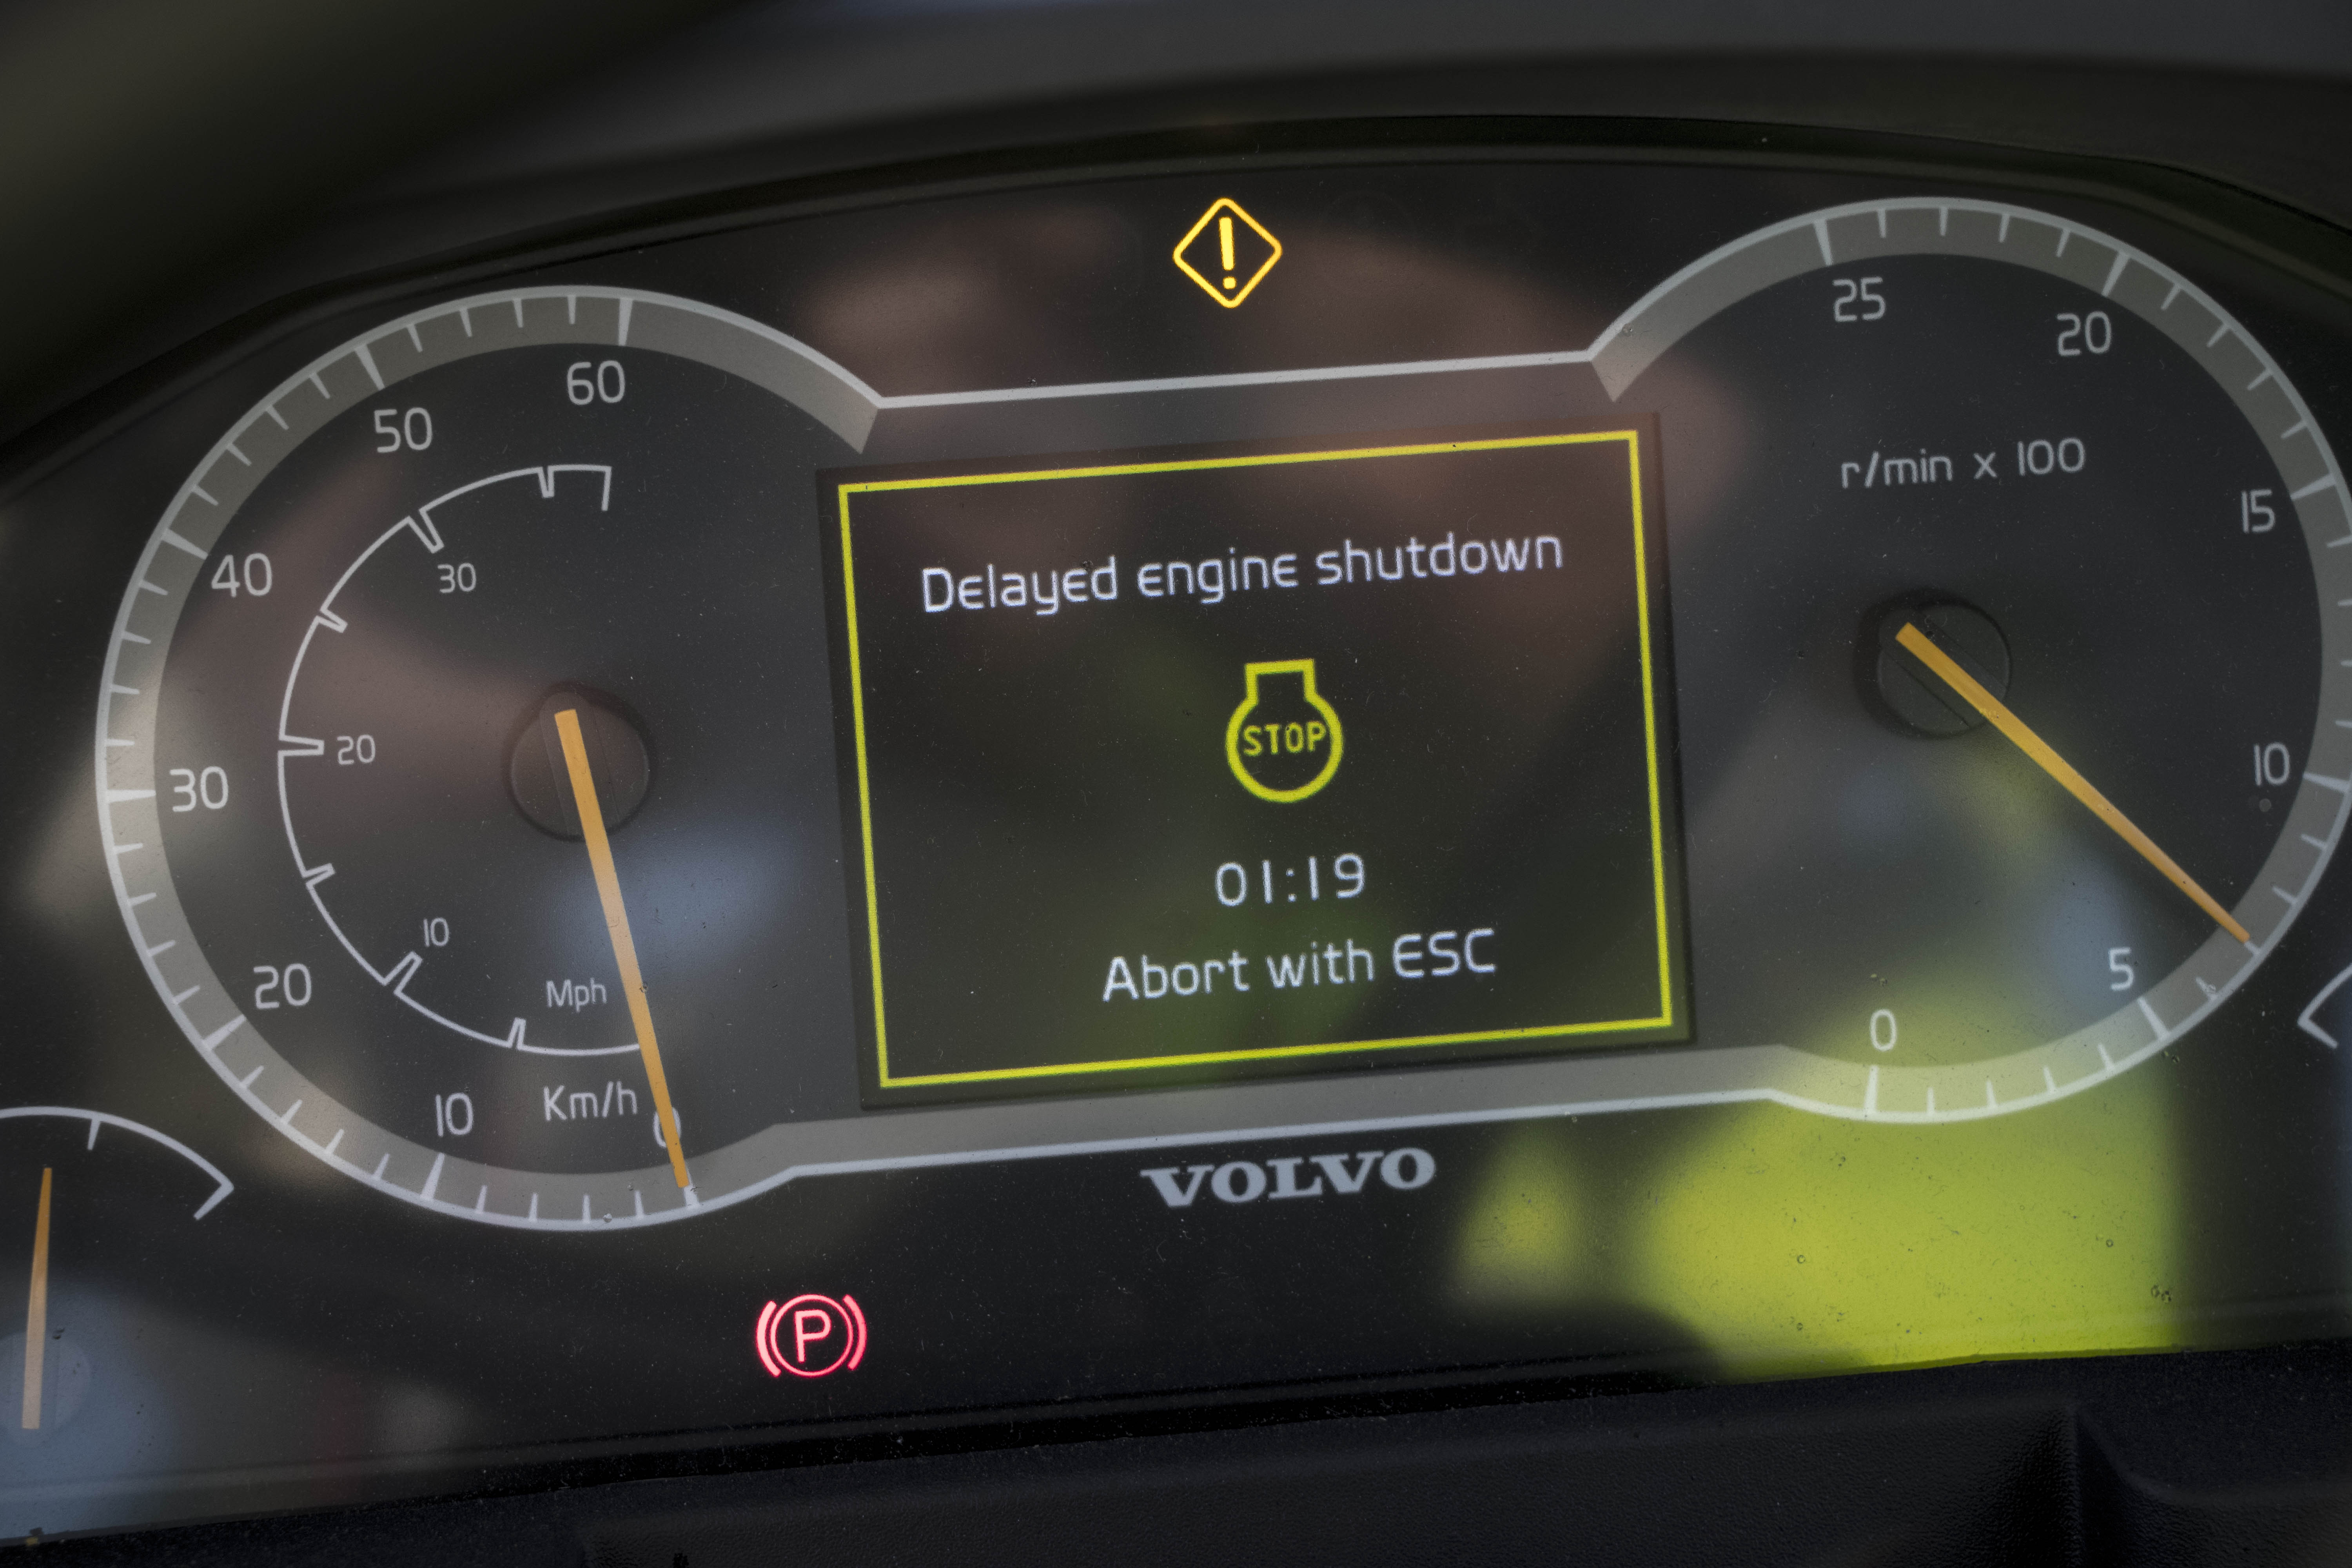 Volvo front end loader delayed auto shutdown timer